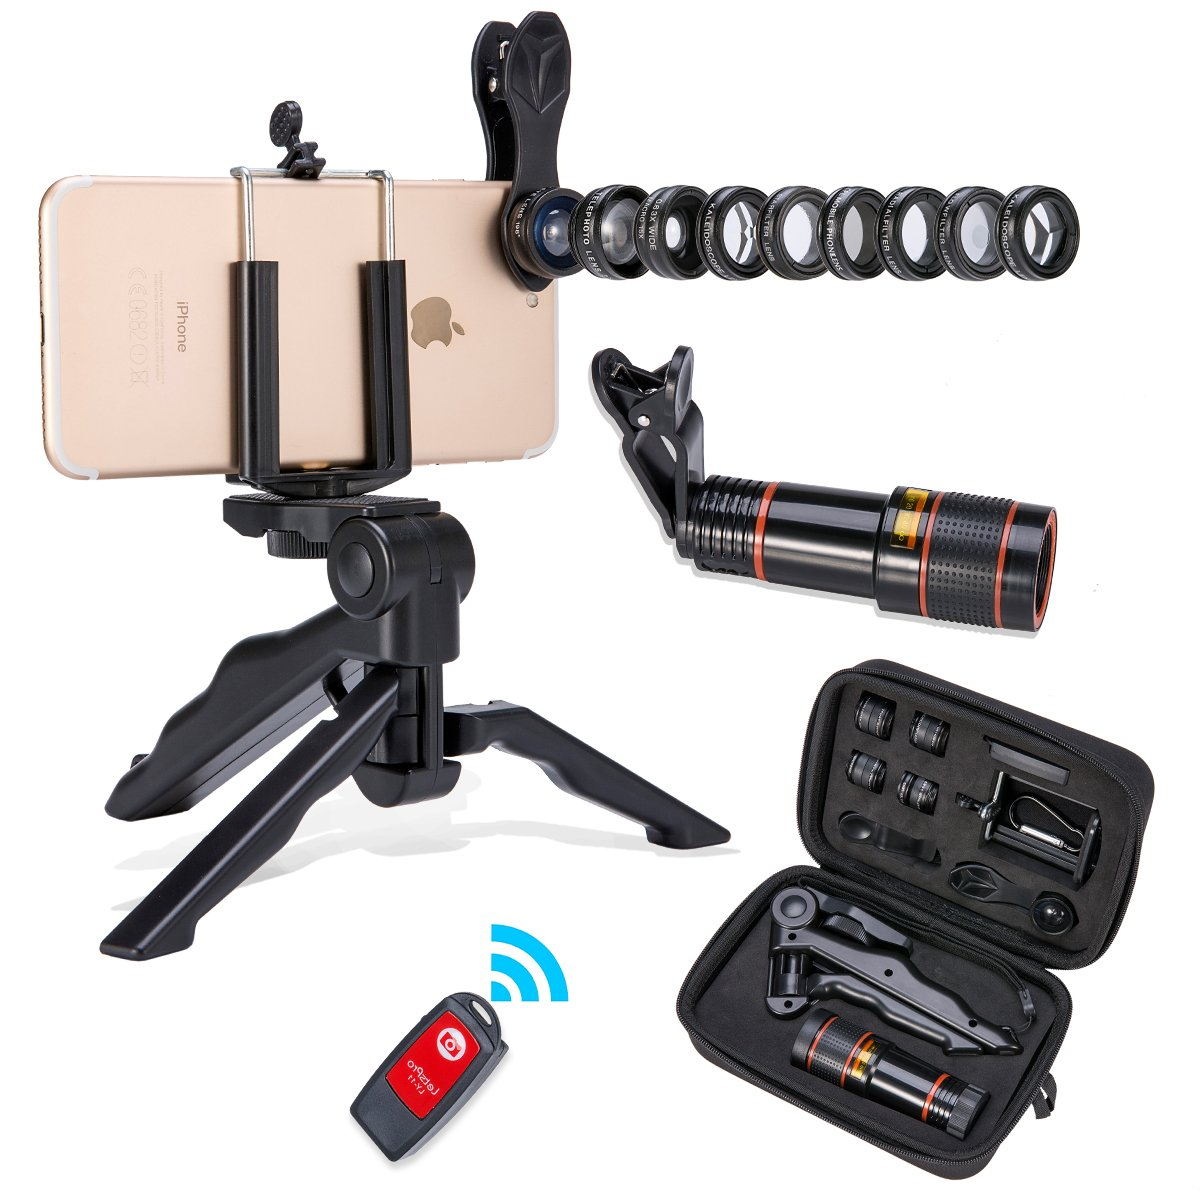 Akinger 13 in 1 Camera Phone Lens,New Generation Zoom Telephoto Lens+Fisheye Filter Lens+Kaleidoscope Lens+Selfie Remote Control and Tripod for iPhone and Other Smartphone Wide Angle Lens/&MacroLens